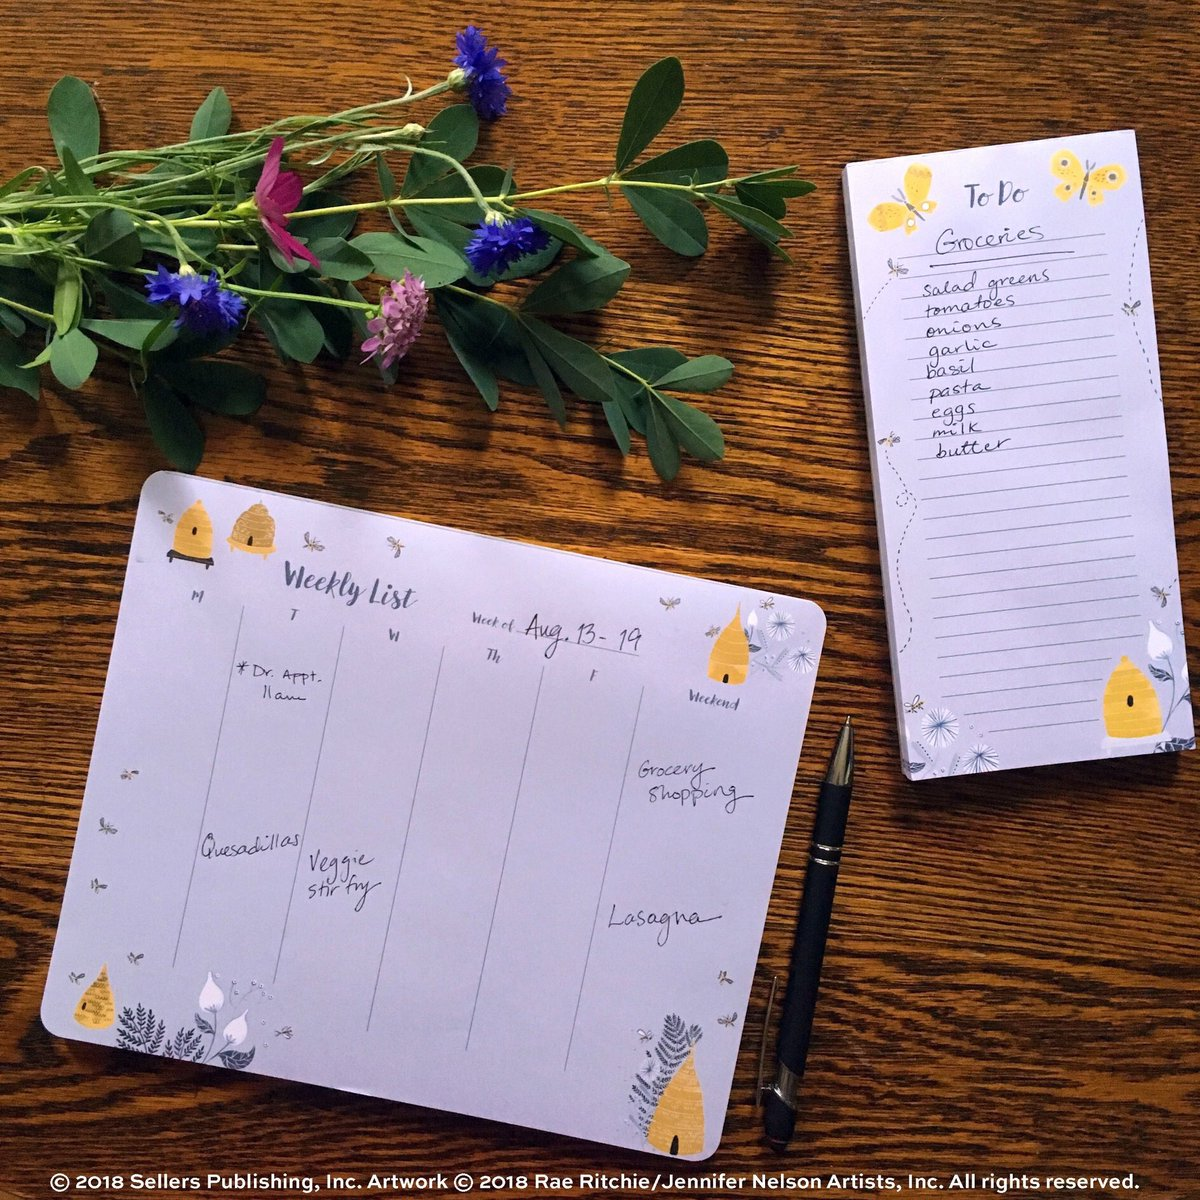 Our High Note® to-do & list pads are great for tackling weekly planning. This pair is from our Garden Bee collection by Rae Ritchie/Jennifer Nelson Artists, Inc. #nationalhoneybeeday #sellerspublishing #highnotecollection #stationery #stationeryset #honeybees #bees #raeritchie